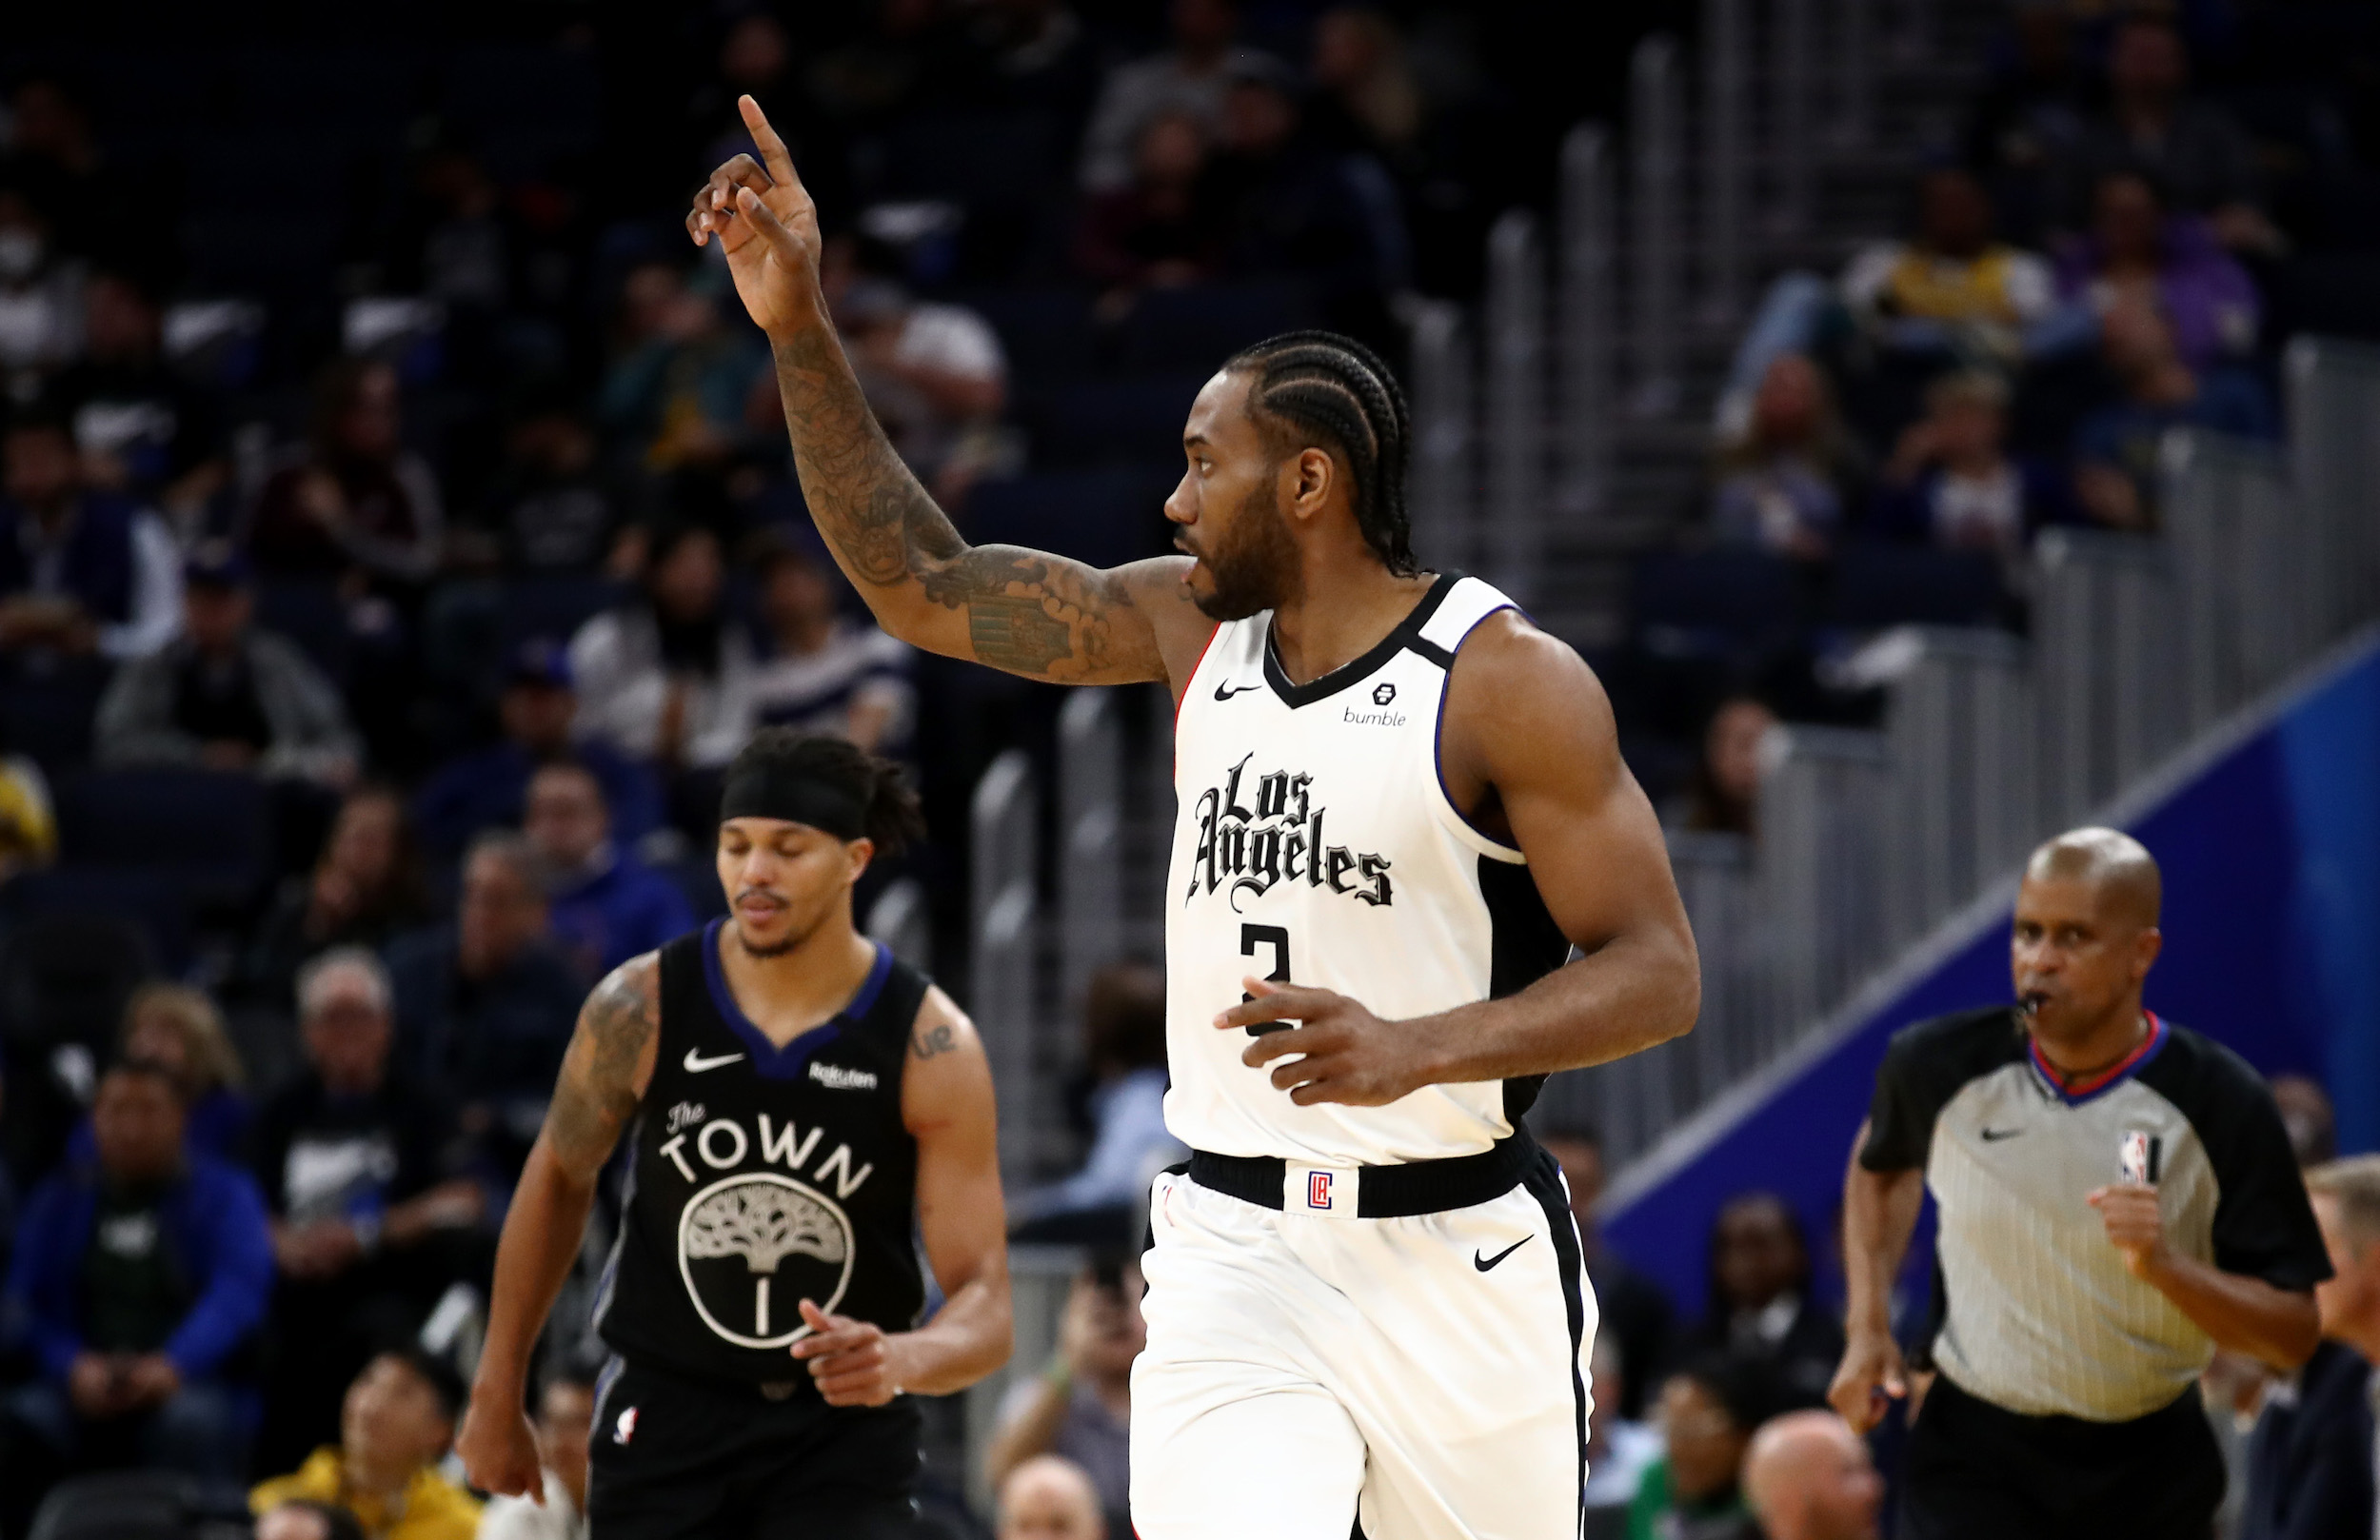 Kawhi Leonard has used hard work and repetition to become a legitimate NBA star.